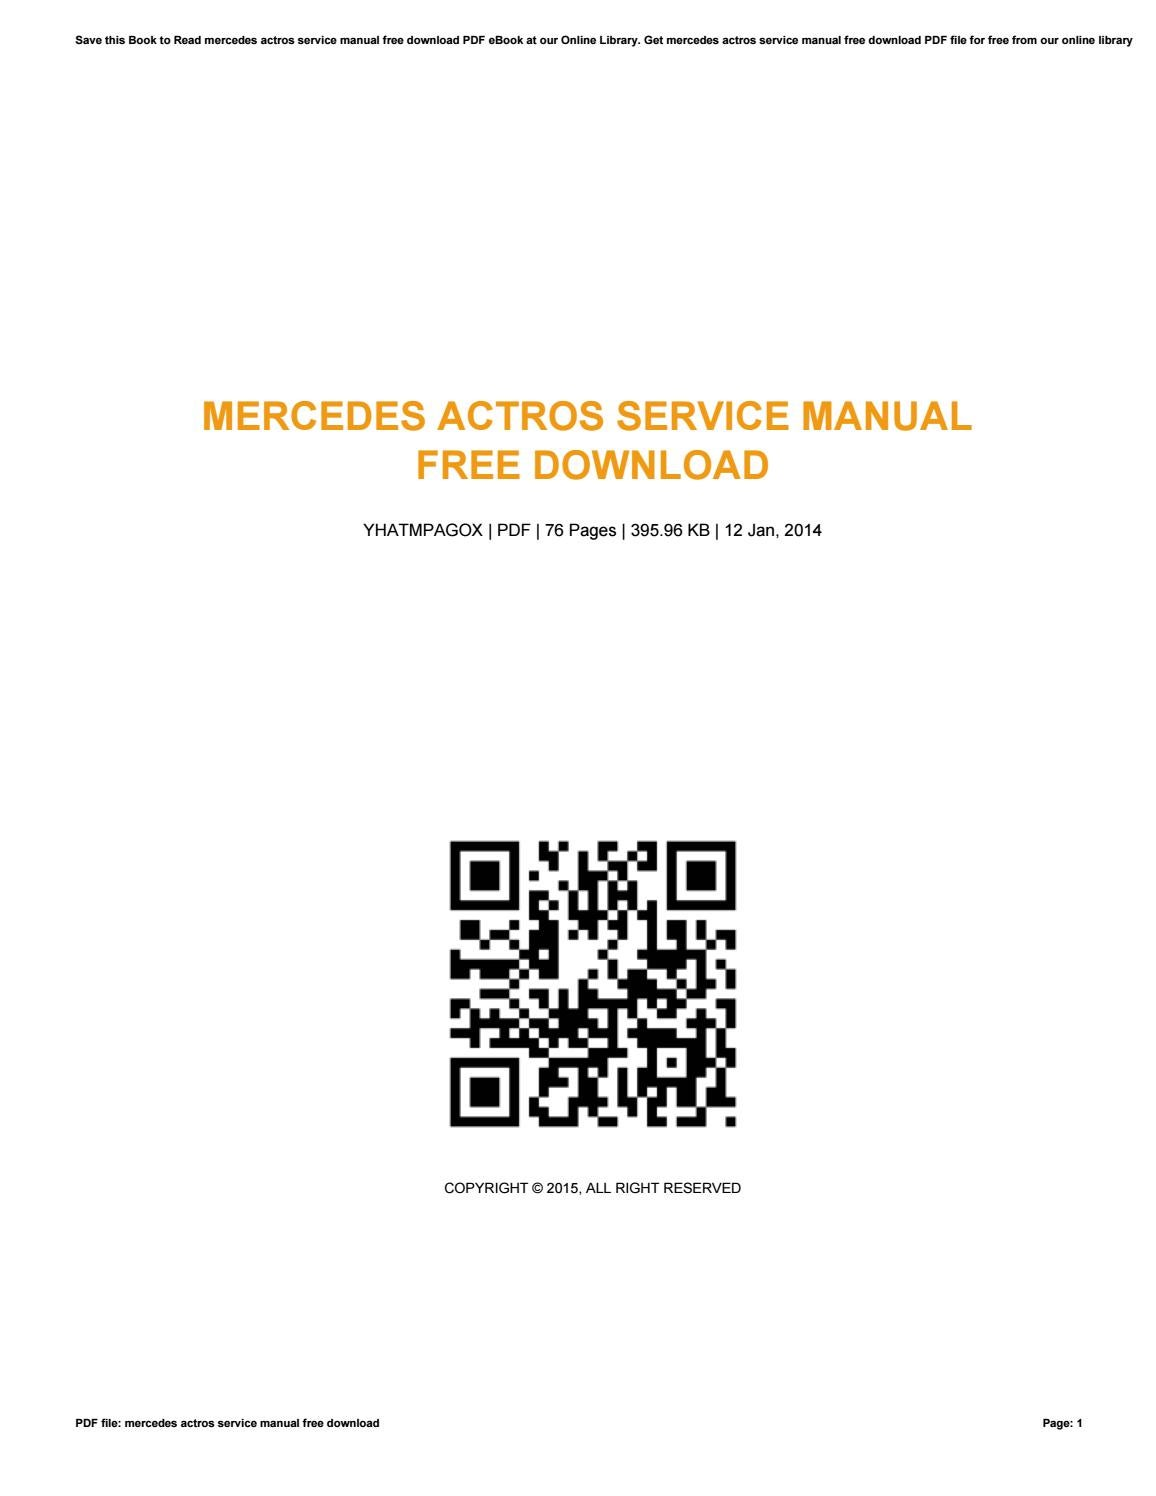 Mercedes actros service manual free download by